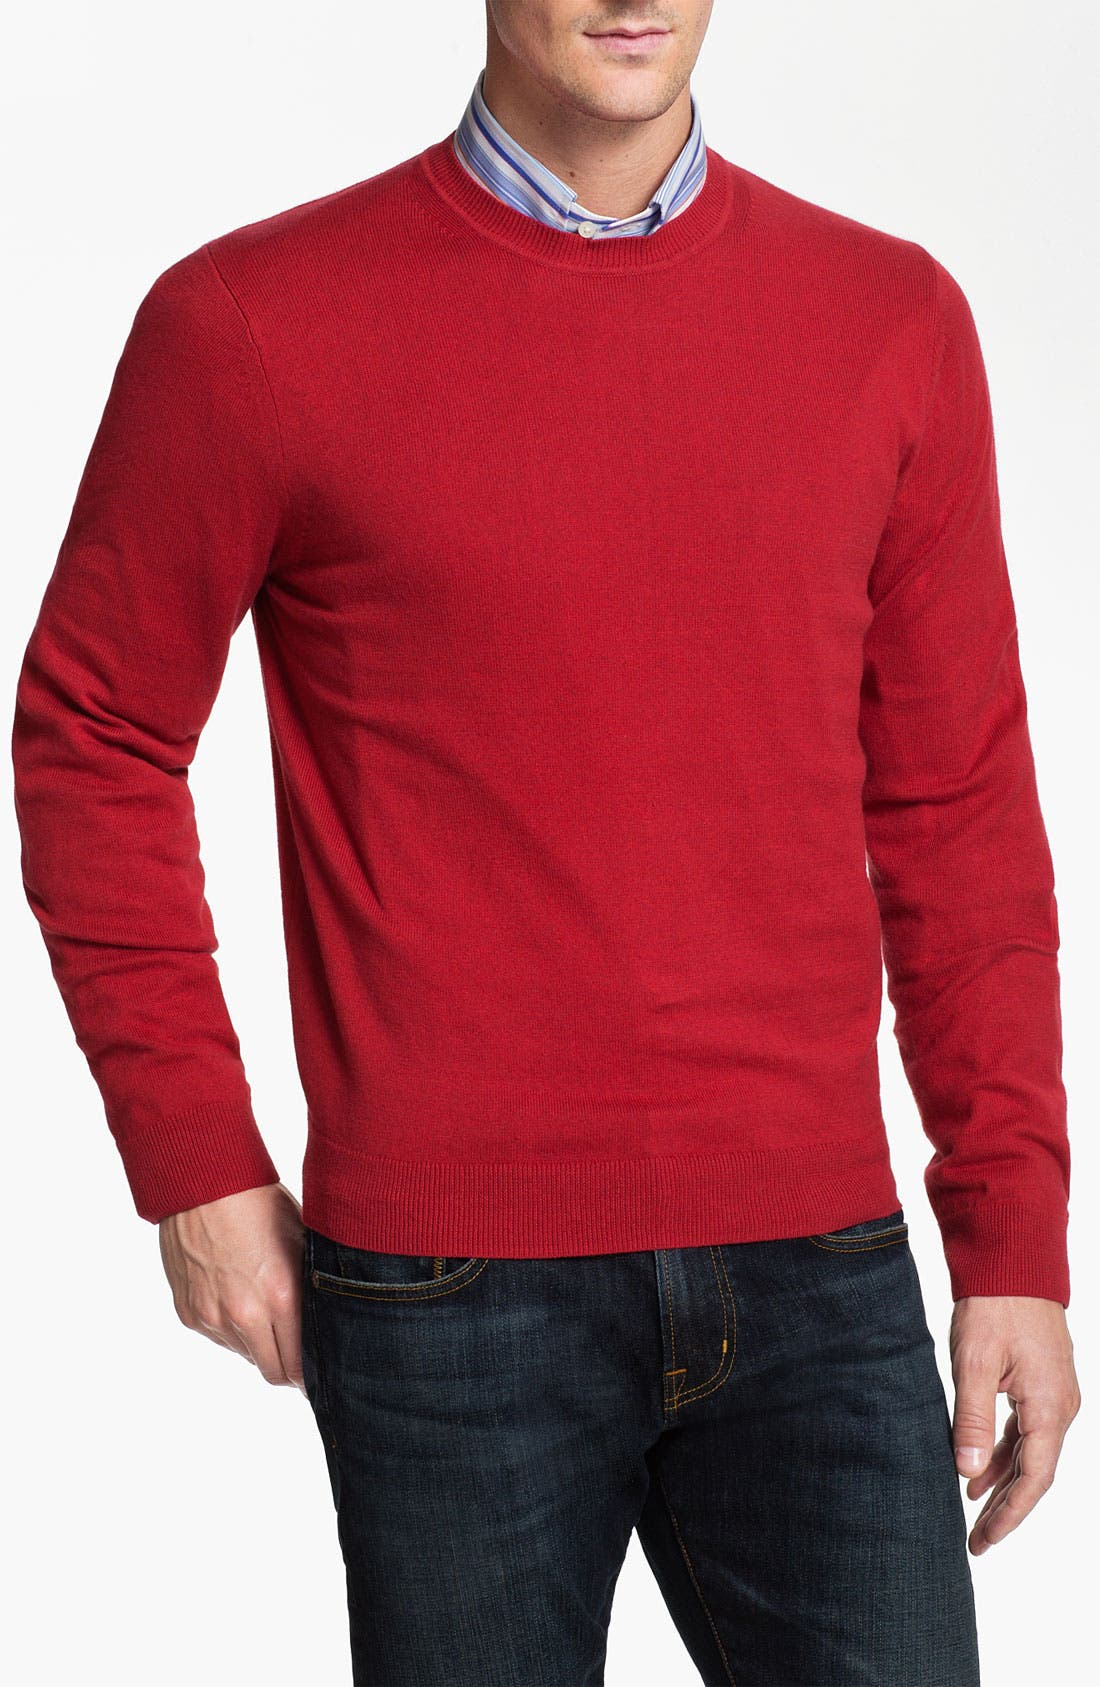 Main Image - Nordstrom Cotton & Cashmere Sweater